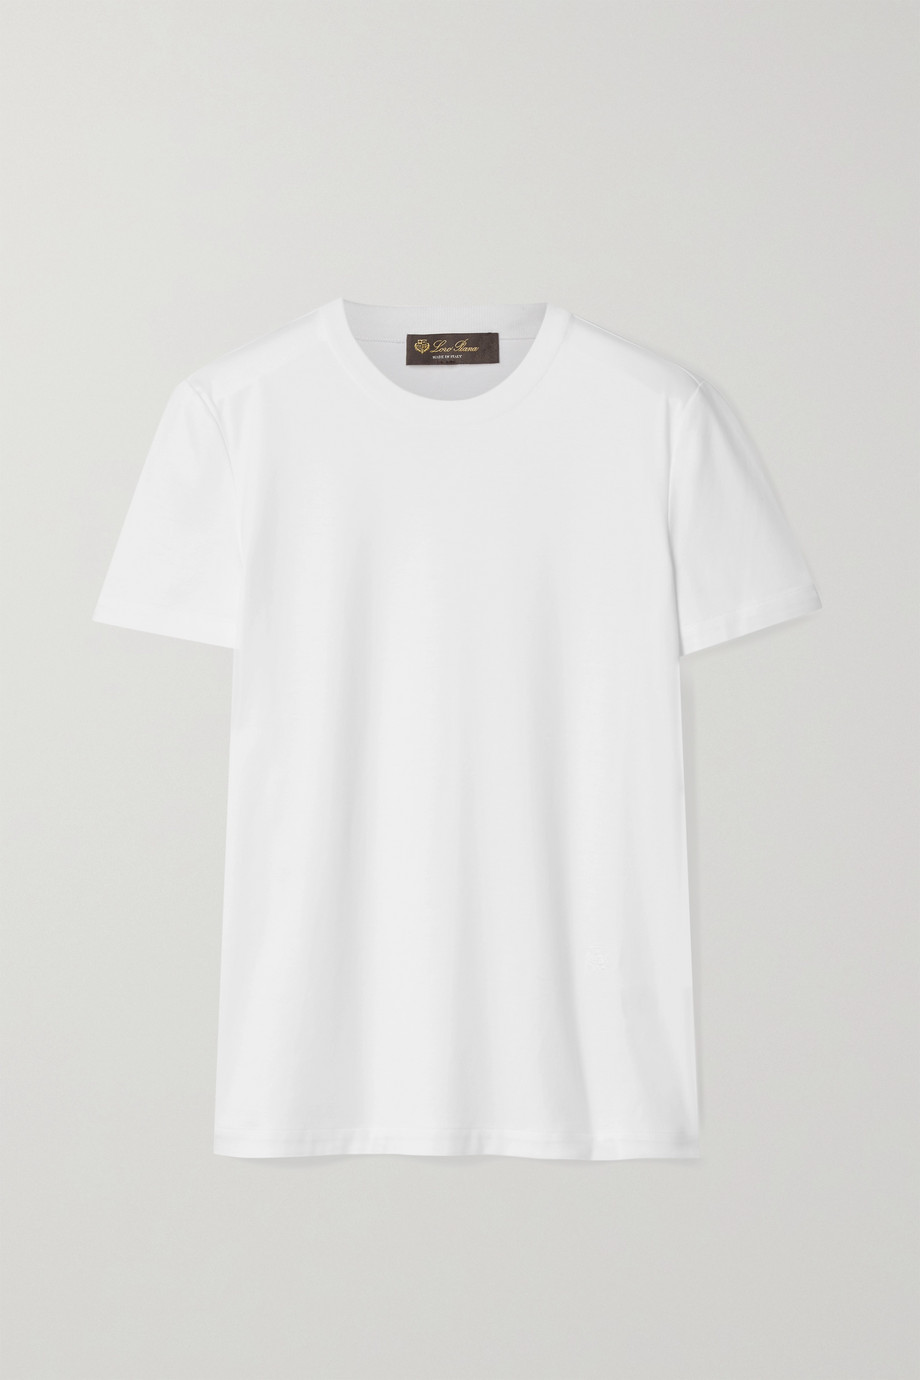 Loro Piana Cotton-jersey T-shirt